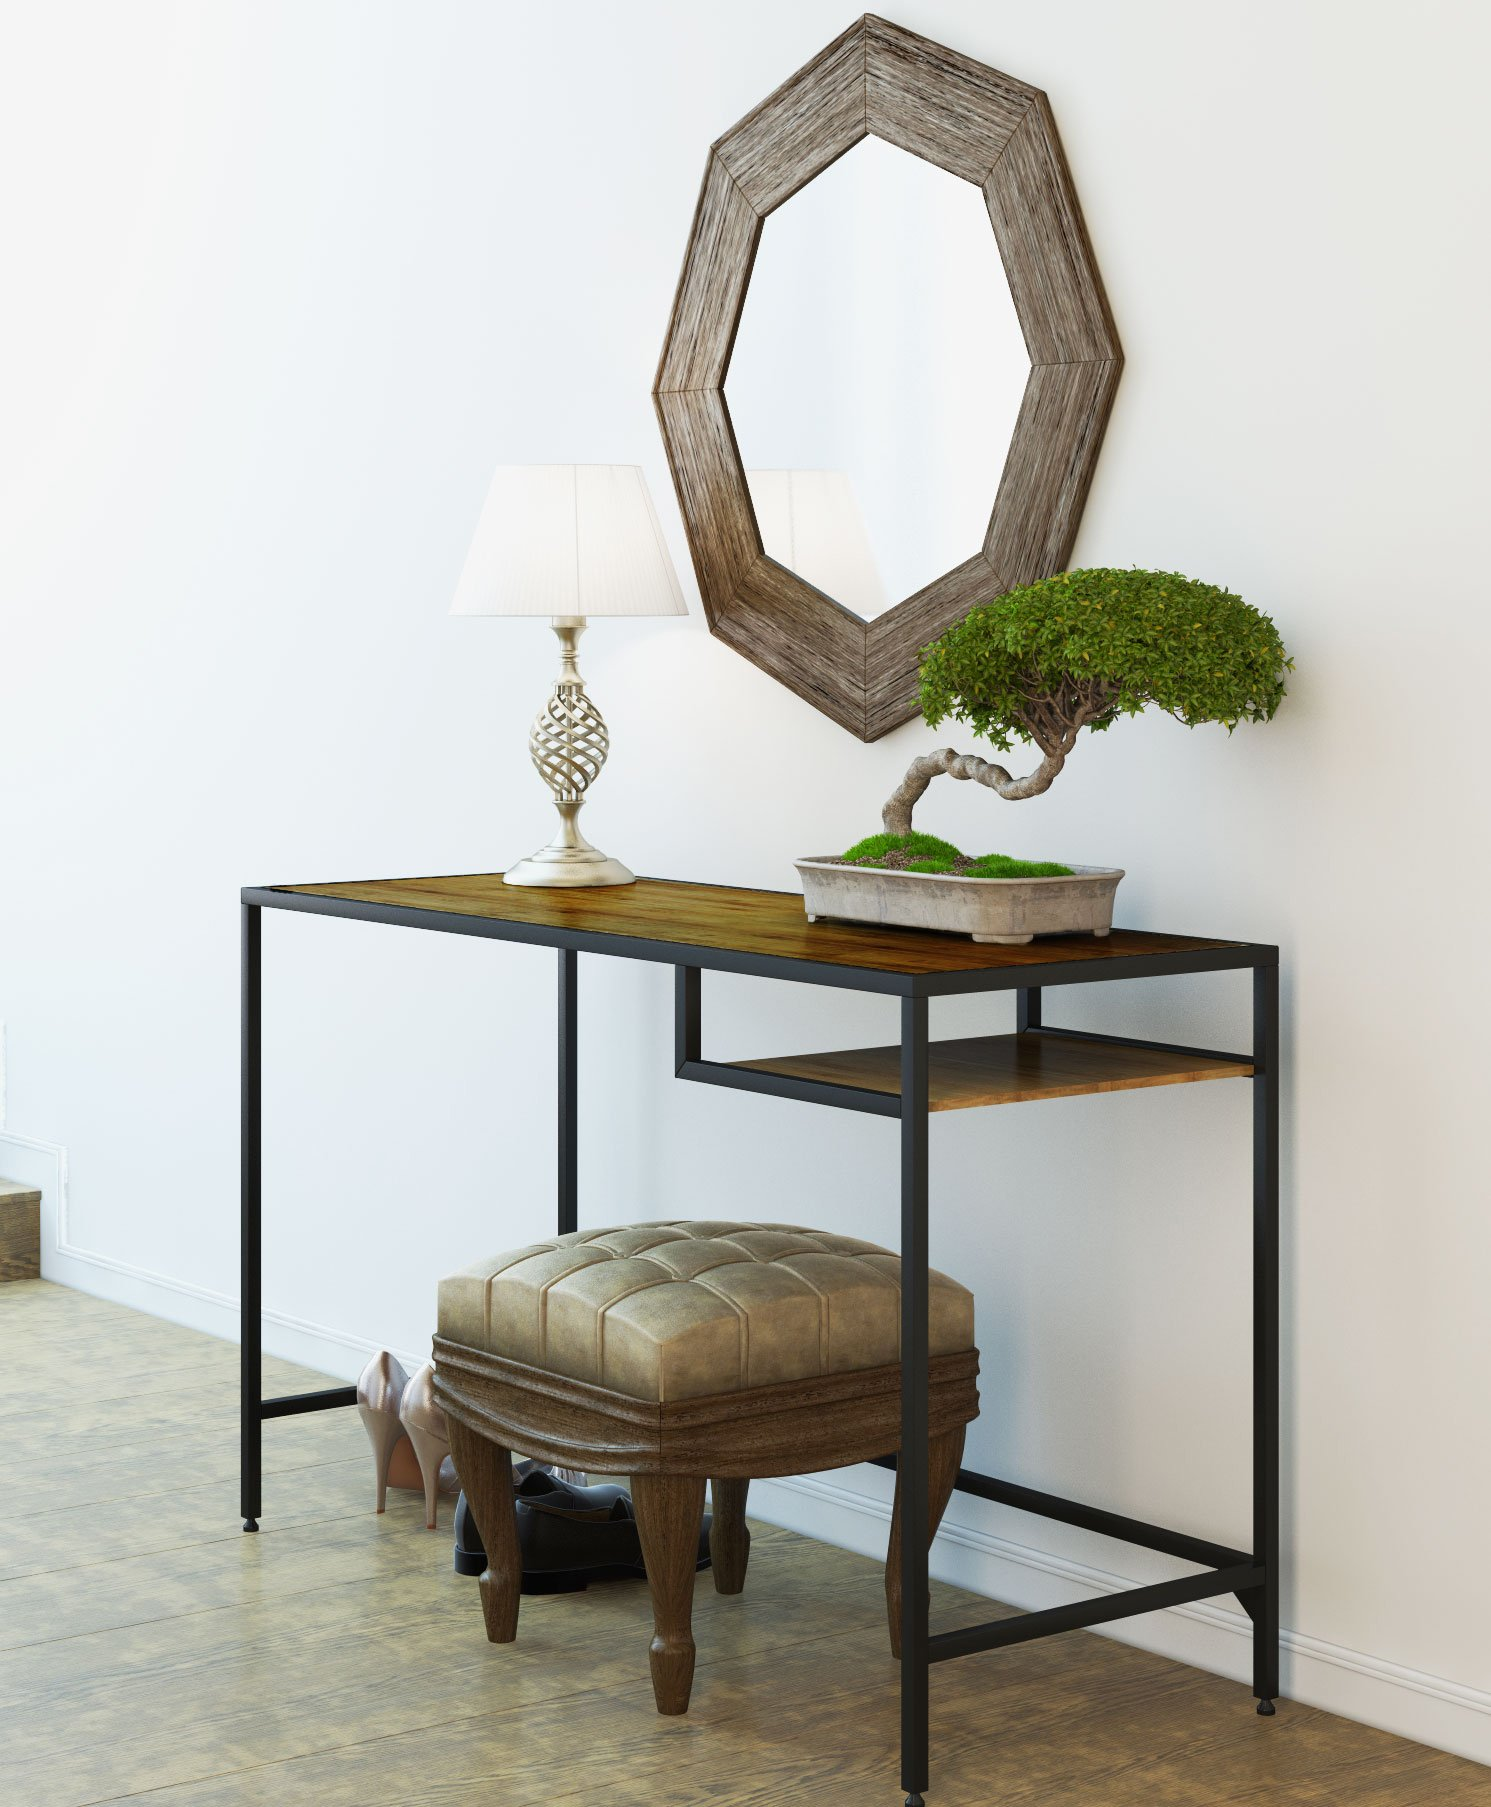 Industrial Vintage Design Space Saver Entryway Hallway Console Table Desk with Lower Shelf Storage, Wood Top and Metal Black Metal Frame - Versatile console entryway table with warm rustic style.Includes parts, tools and instructions for easy assembly.Topped with plants, books or picture frames, our console table gives your space a rustic, industrial feel with its bamboo wood surfaces and black metal frame..It's ideal in the entryway or behind a sofa, and also makes a chic media stand with sleek ,straight industrial black metal table frame..Modern, classic and industrial inspired style the perfect wood metal console instantly transforms your living, family room or entryway an accent décor..Lower shelf gives you some space to keep your mails, keys, magazines and small household items. - living-room-furniture, living-room, console-tables - 811RNx2sK6L -